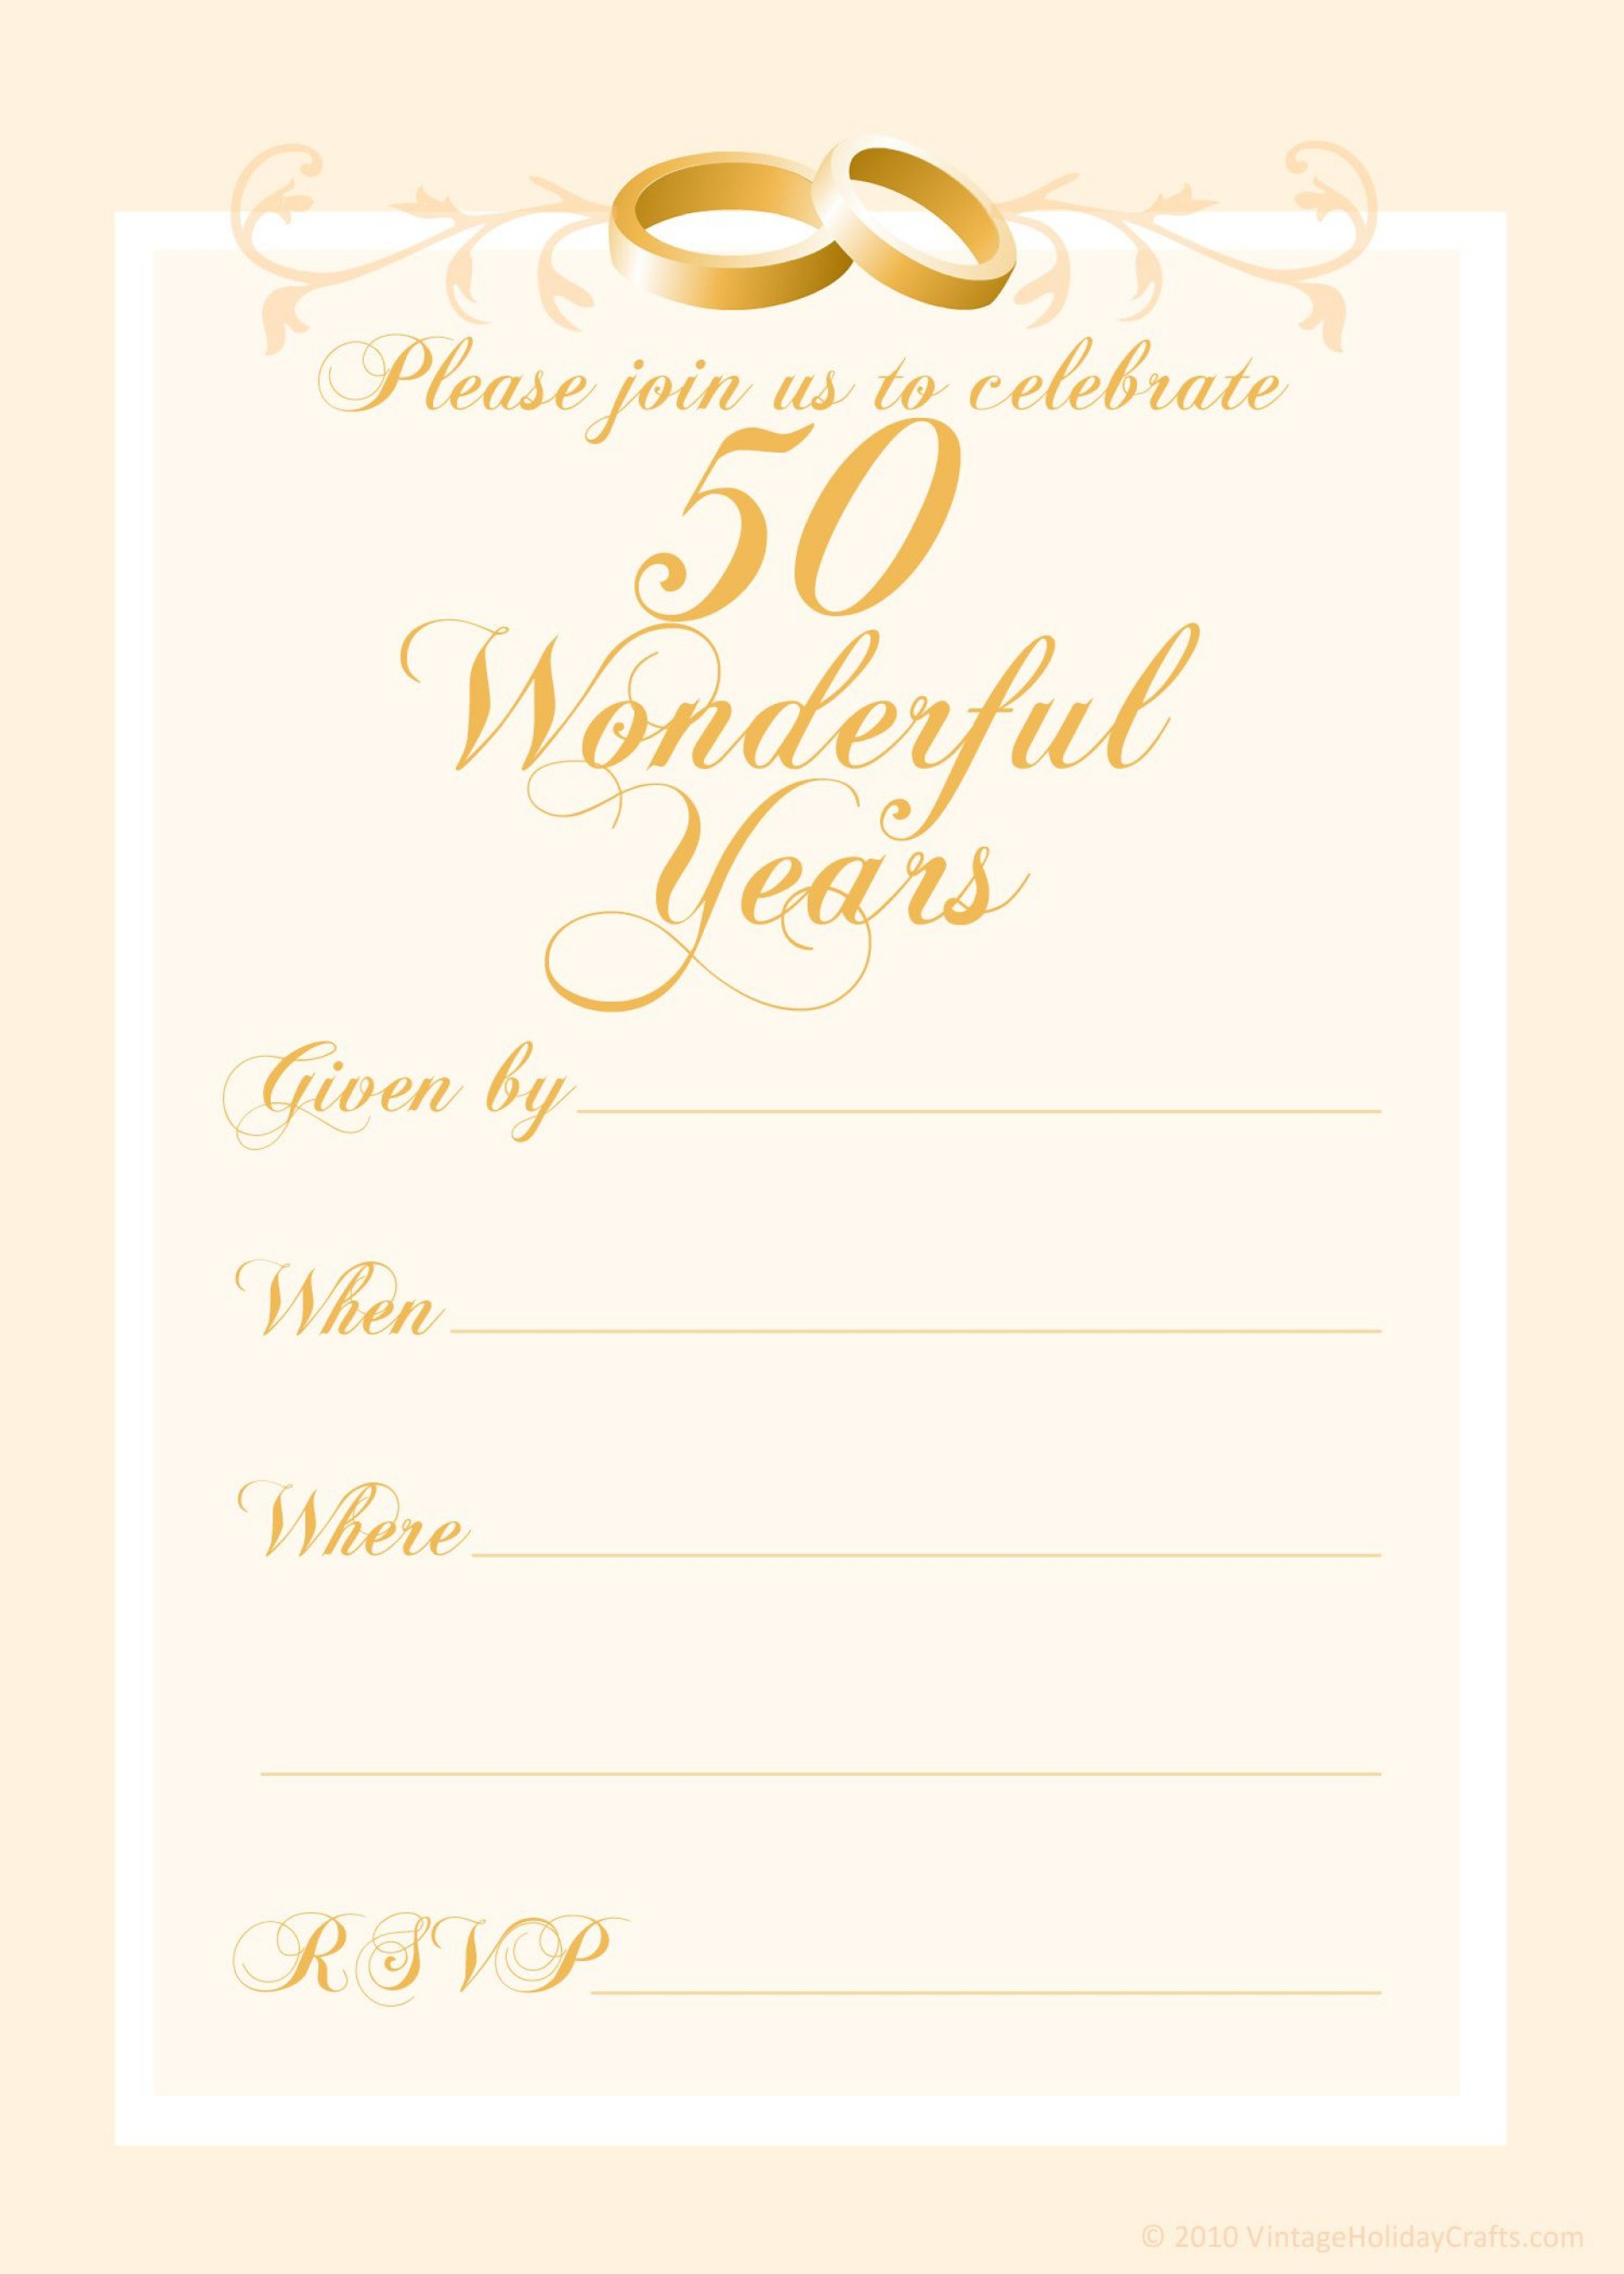 000 Magnificent 50th Anniversary Invitation Template Inspiration  Templates Wedding Free Download Golden1920